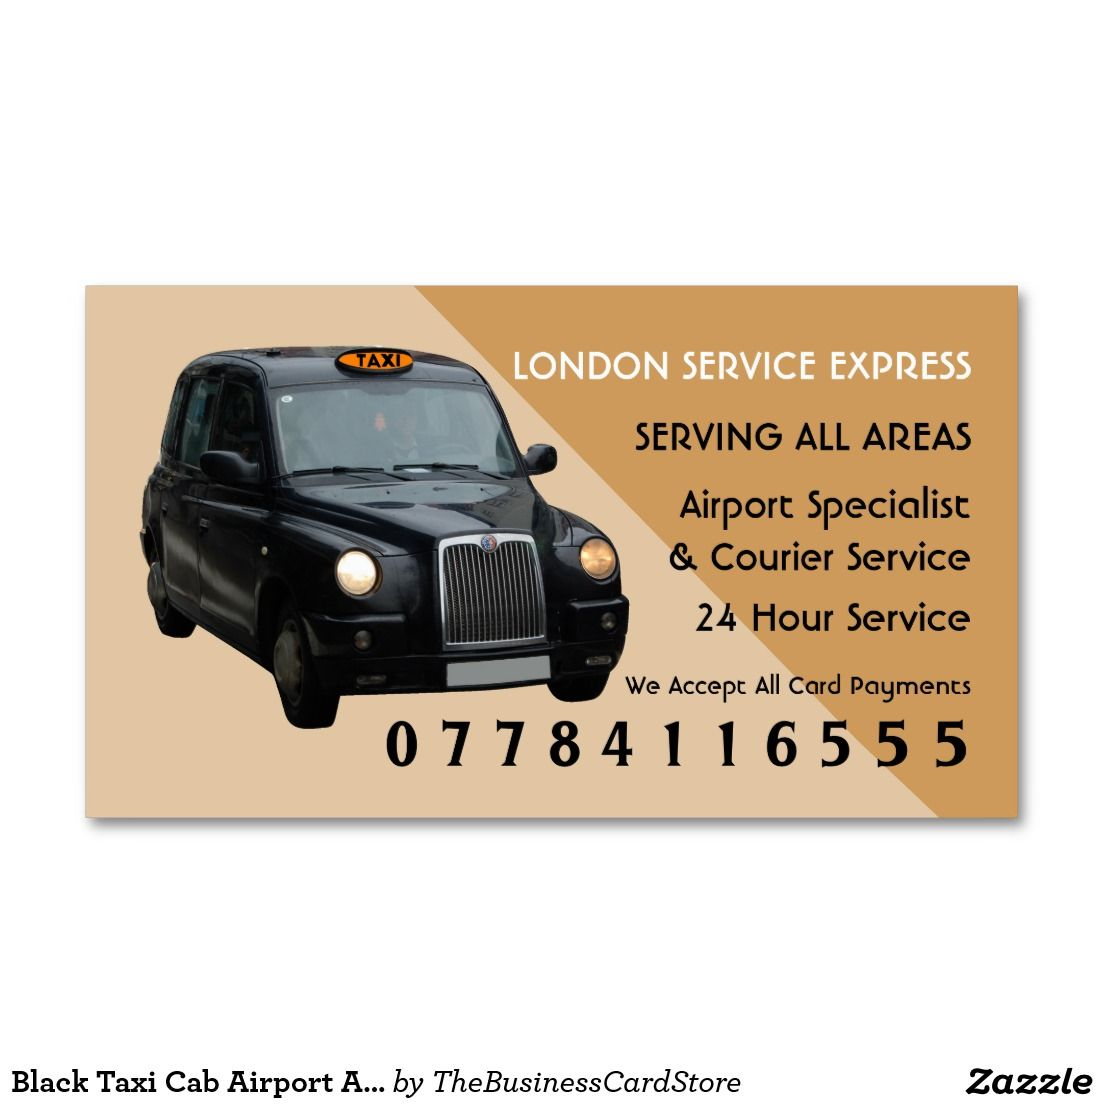 Black Taxi Cab Airport And Station Price Lists Business Card | Taxi ...